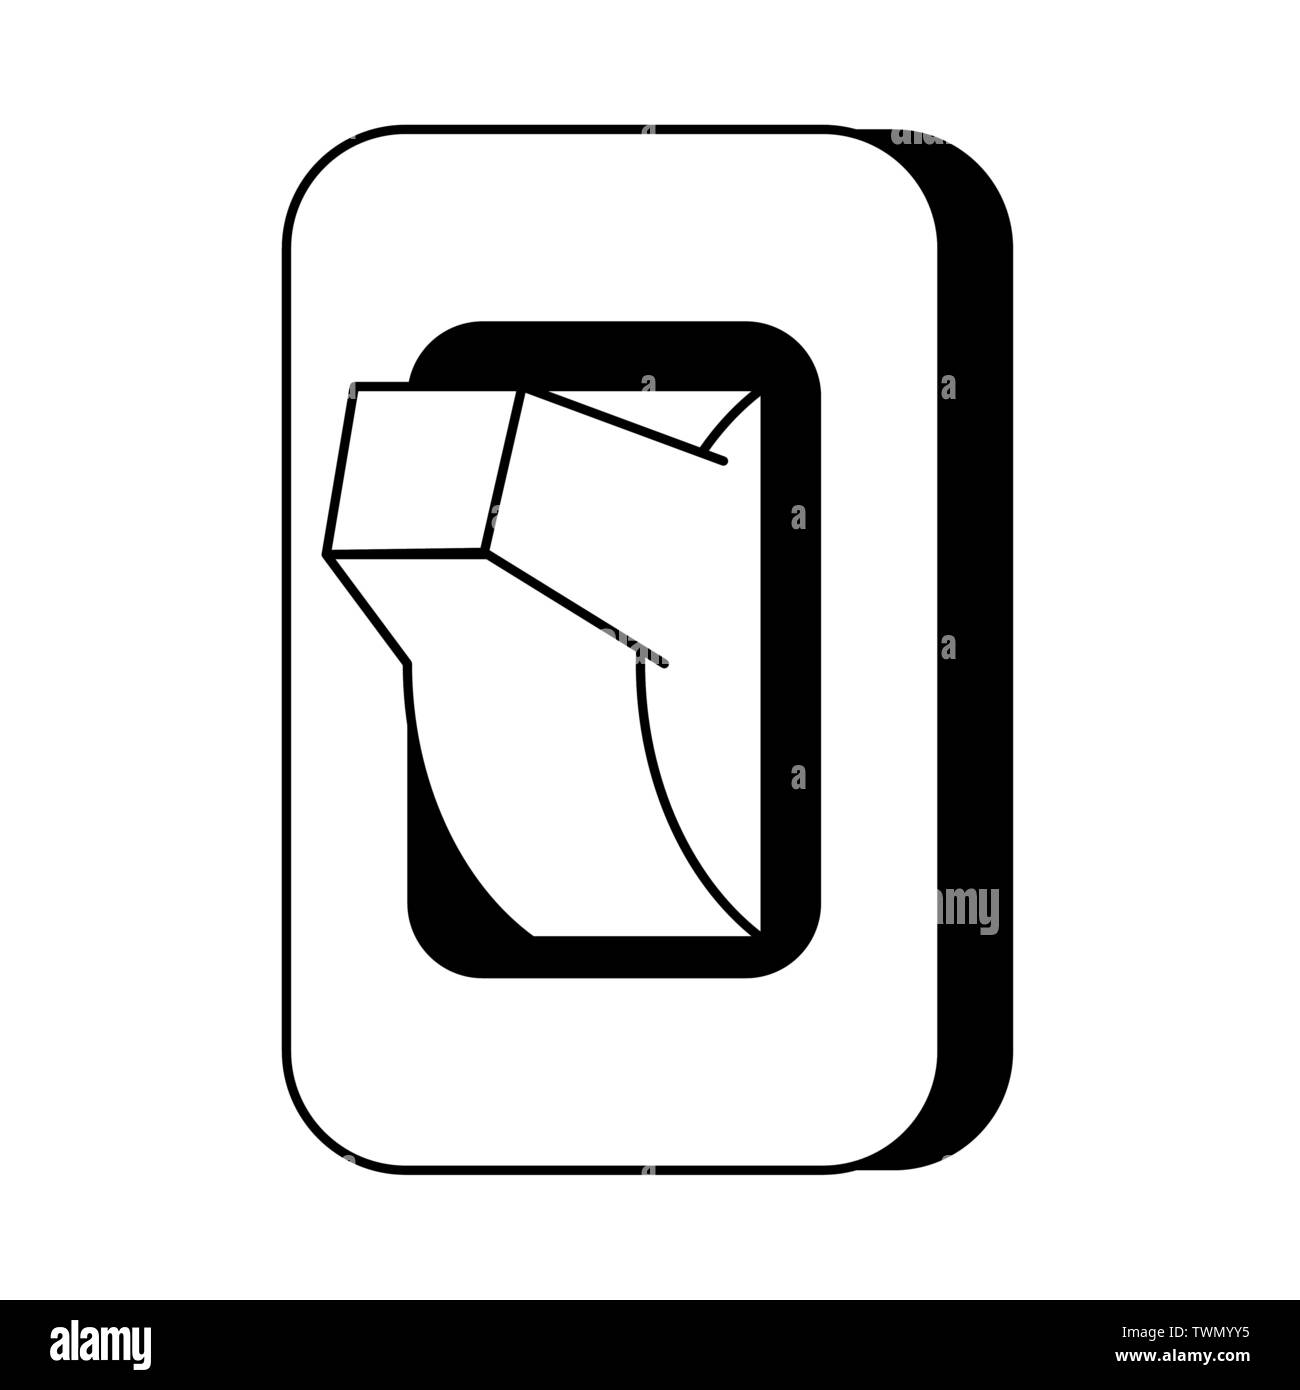 Light switch isolated cartoon symbol in black and white - Stock Vector